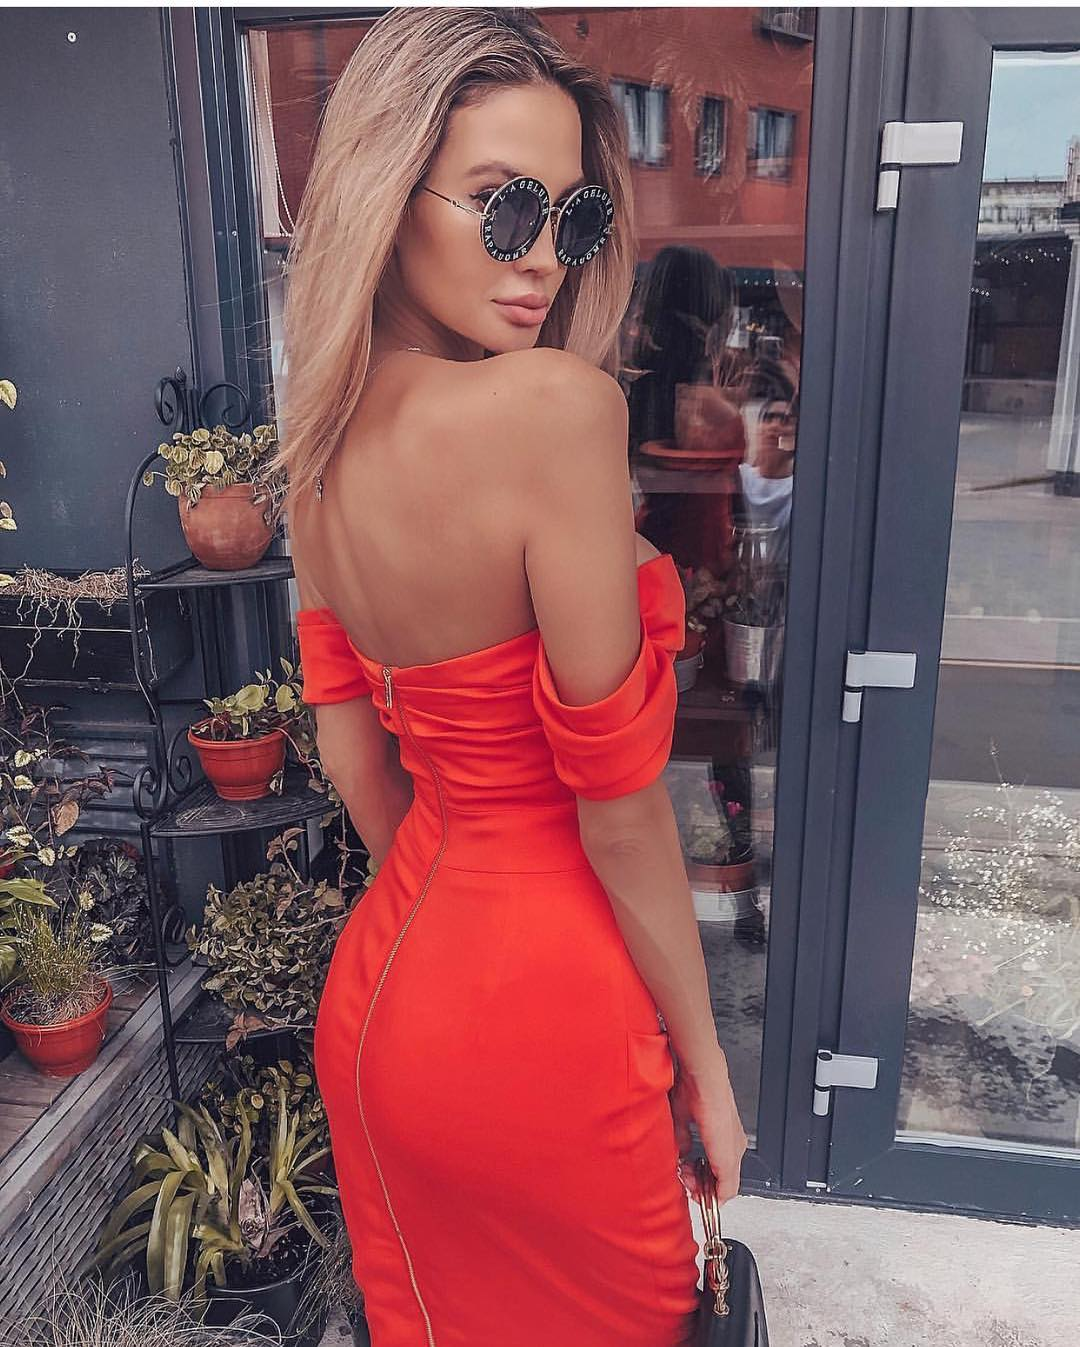 Strapless Slim Dress In Red And Rounded Sunglasses For Summer Parties 2019